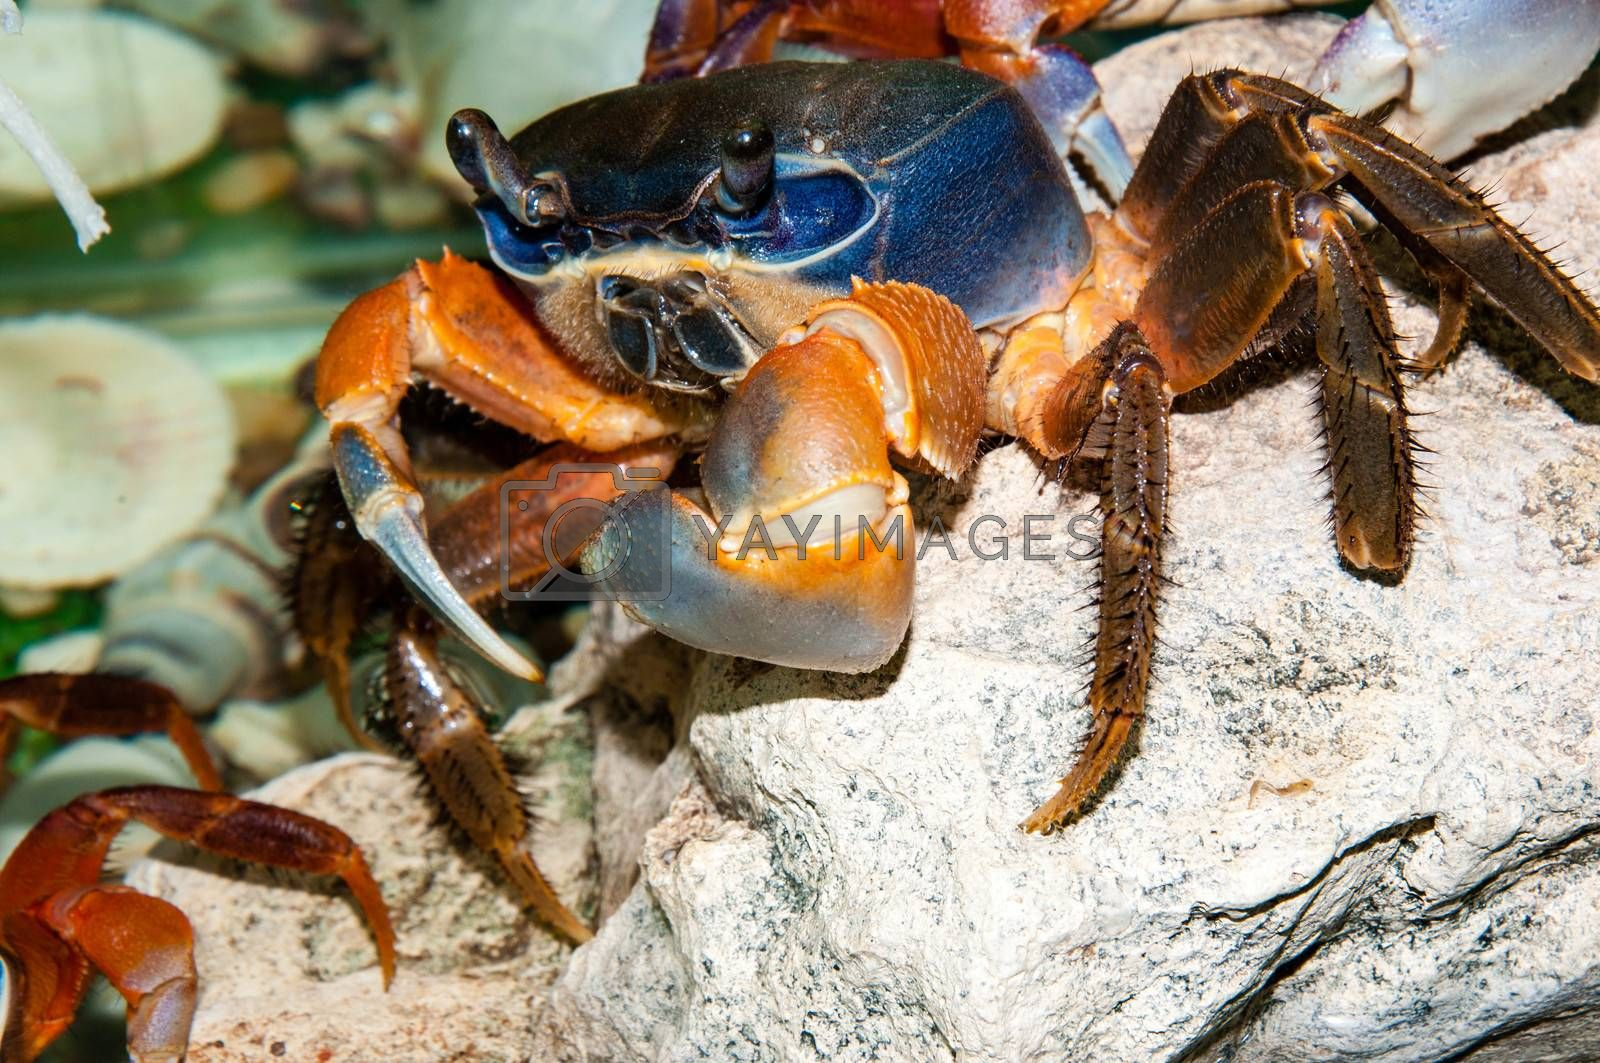 Rainbow crab or Cardisoma armatum in the Aquarium